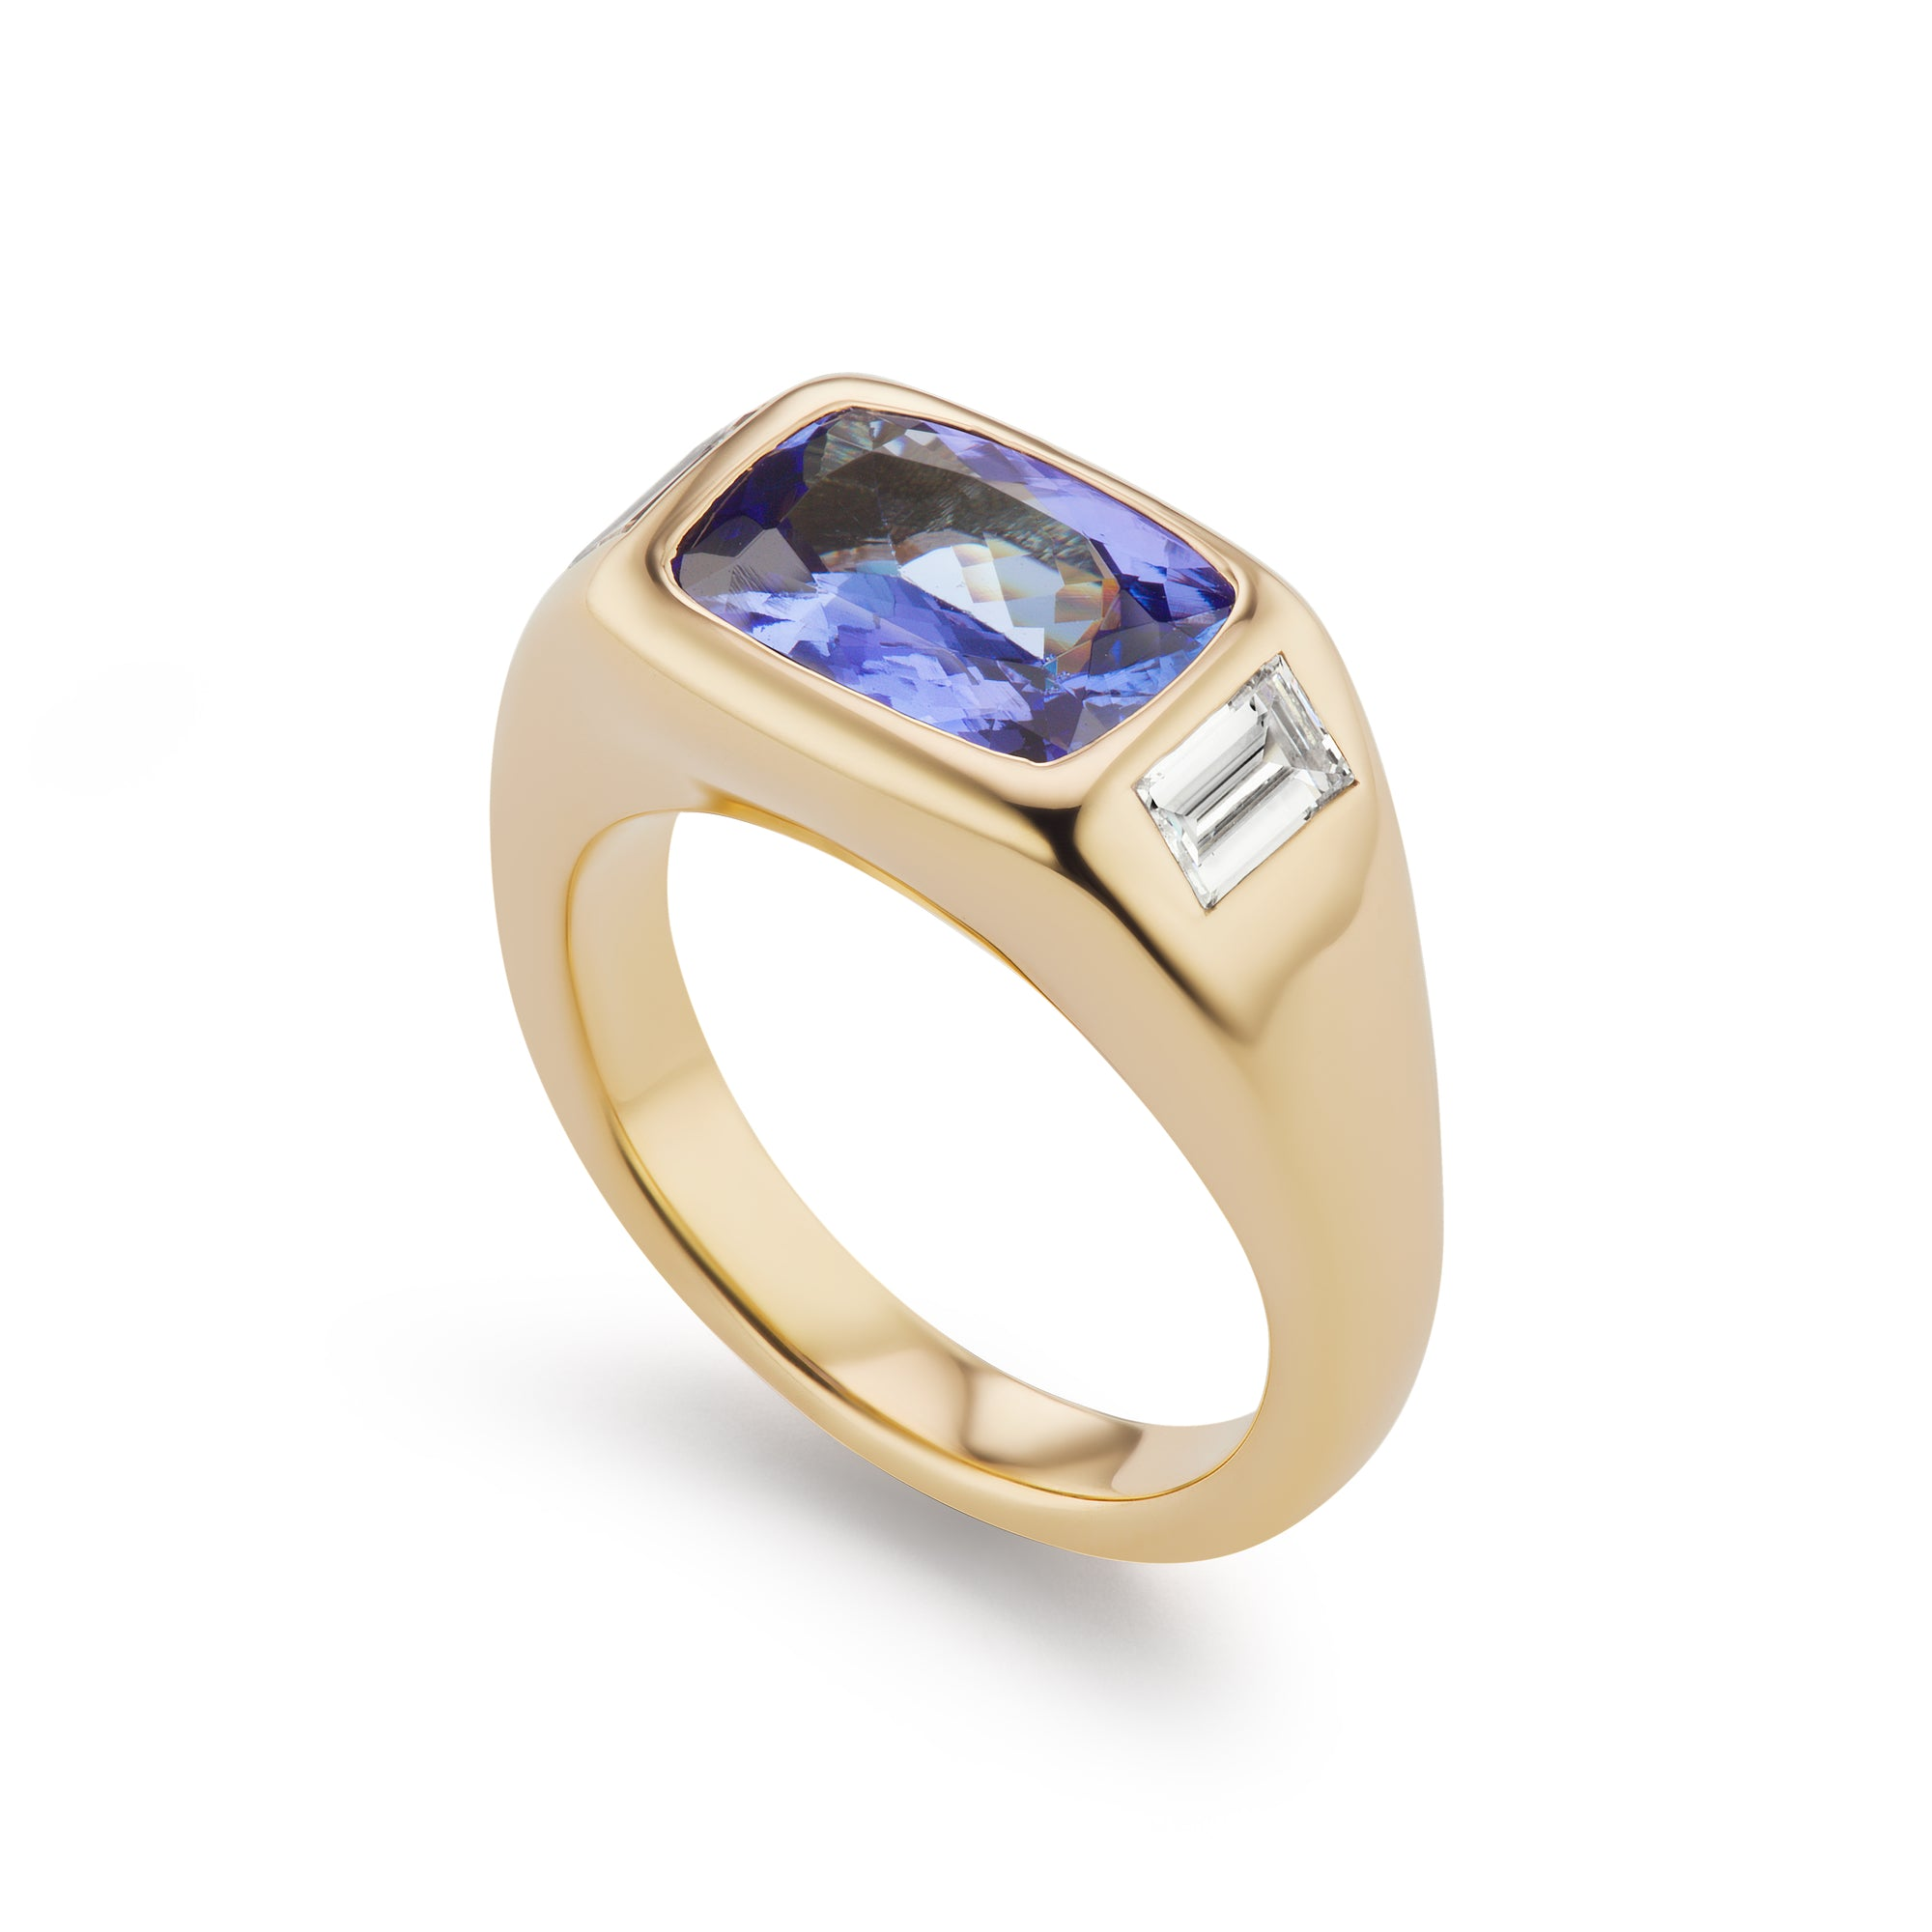 One-of-a-Kind Tanzanite and Diamond Gypsy Ring